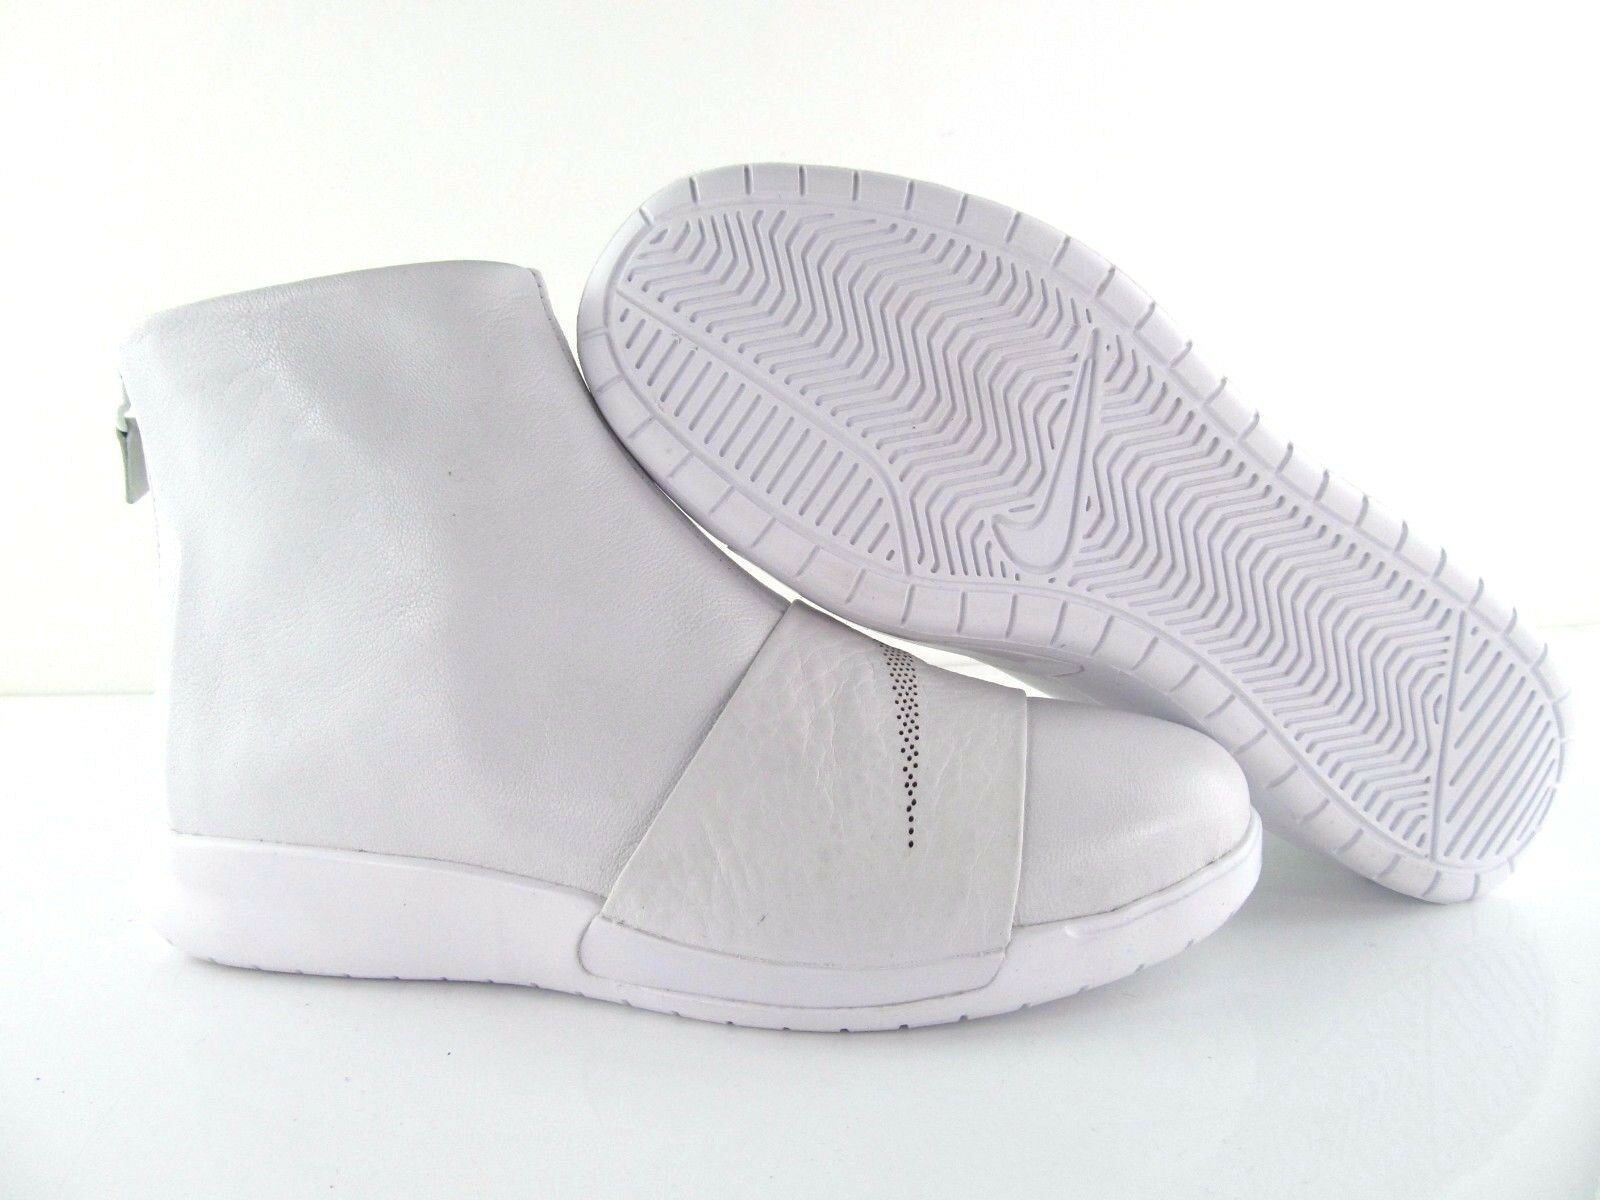 Nike Triple wmns Benassi Boot lux Triple Nike Blanco Leather nikelab New us_5.5 61b8bb